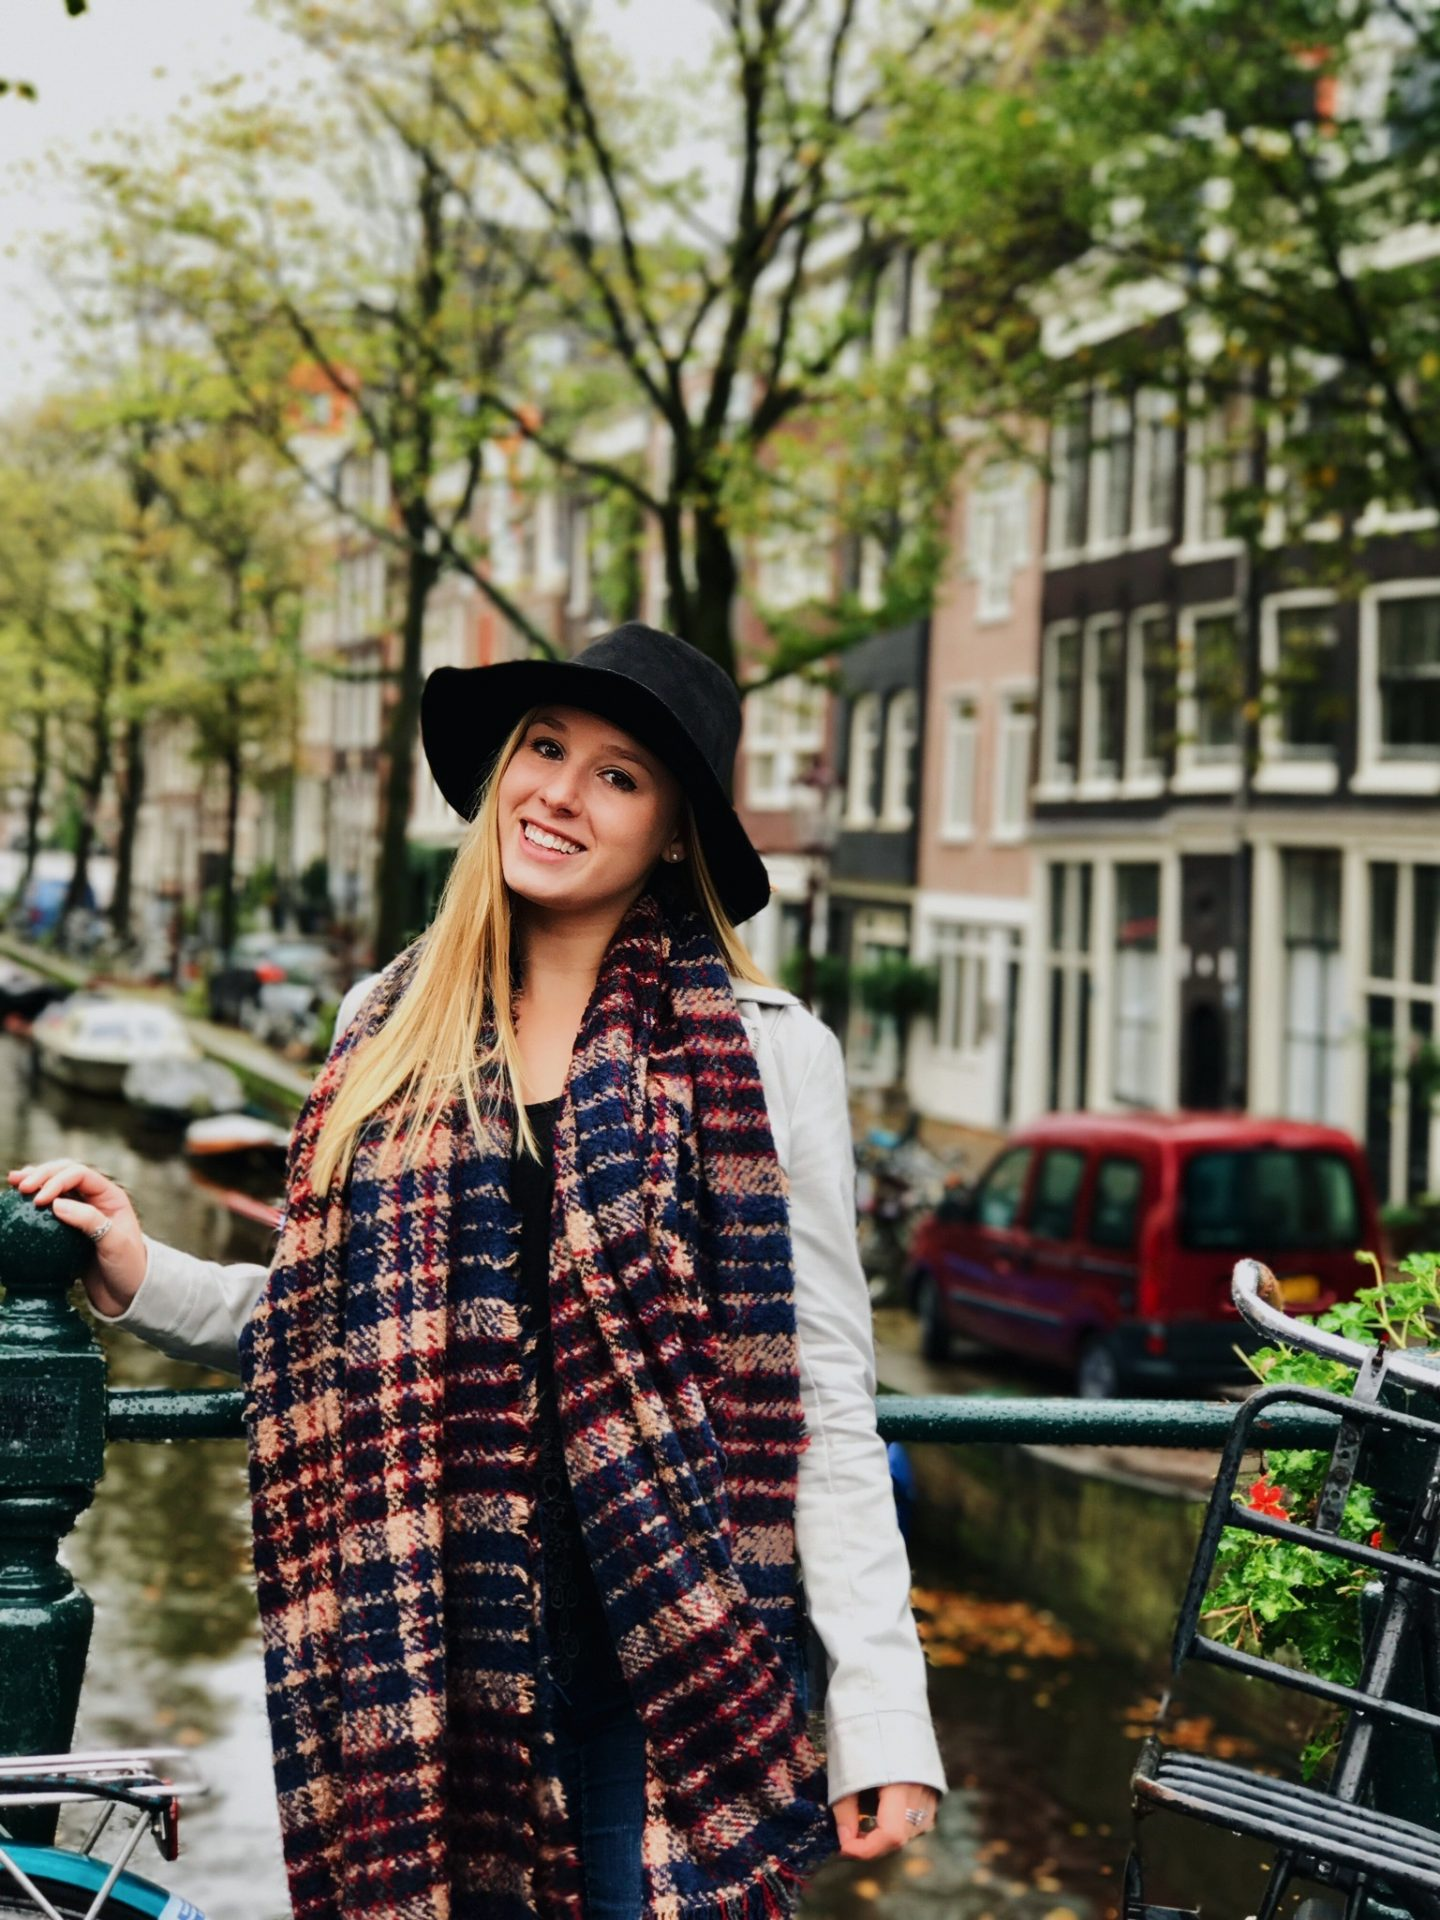 Posing in front of the colorful row houses and canals of Amsterdam